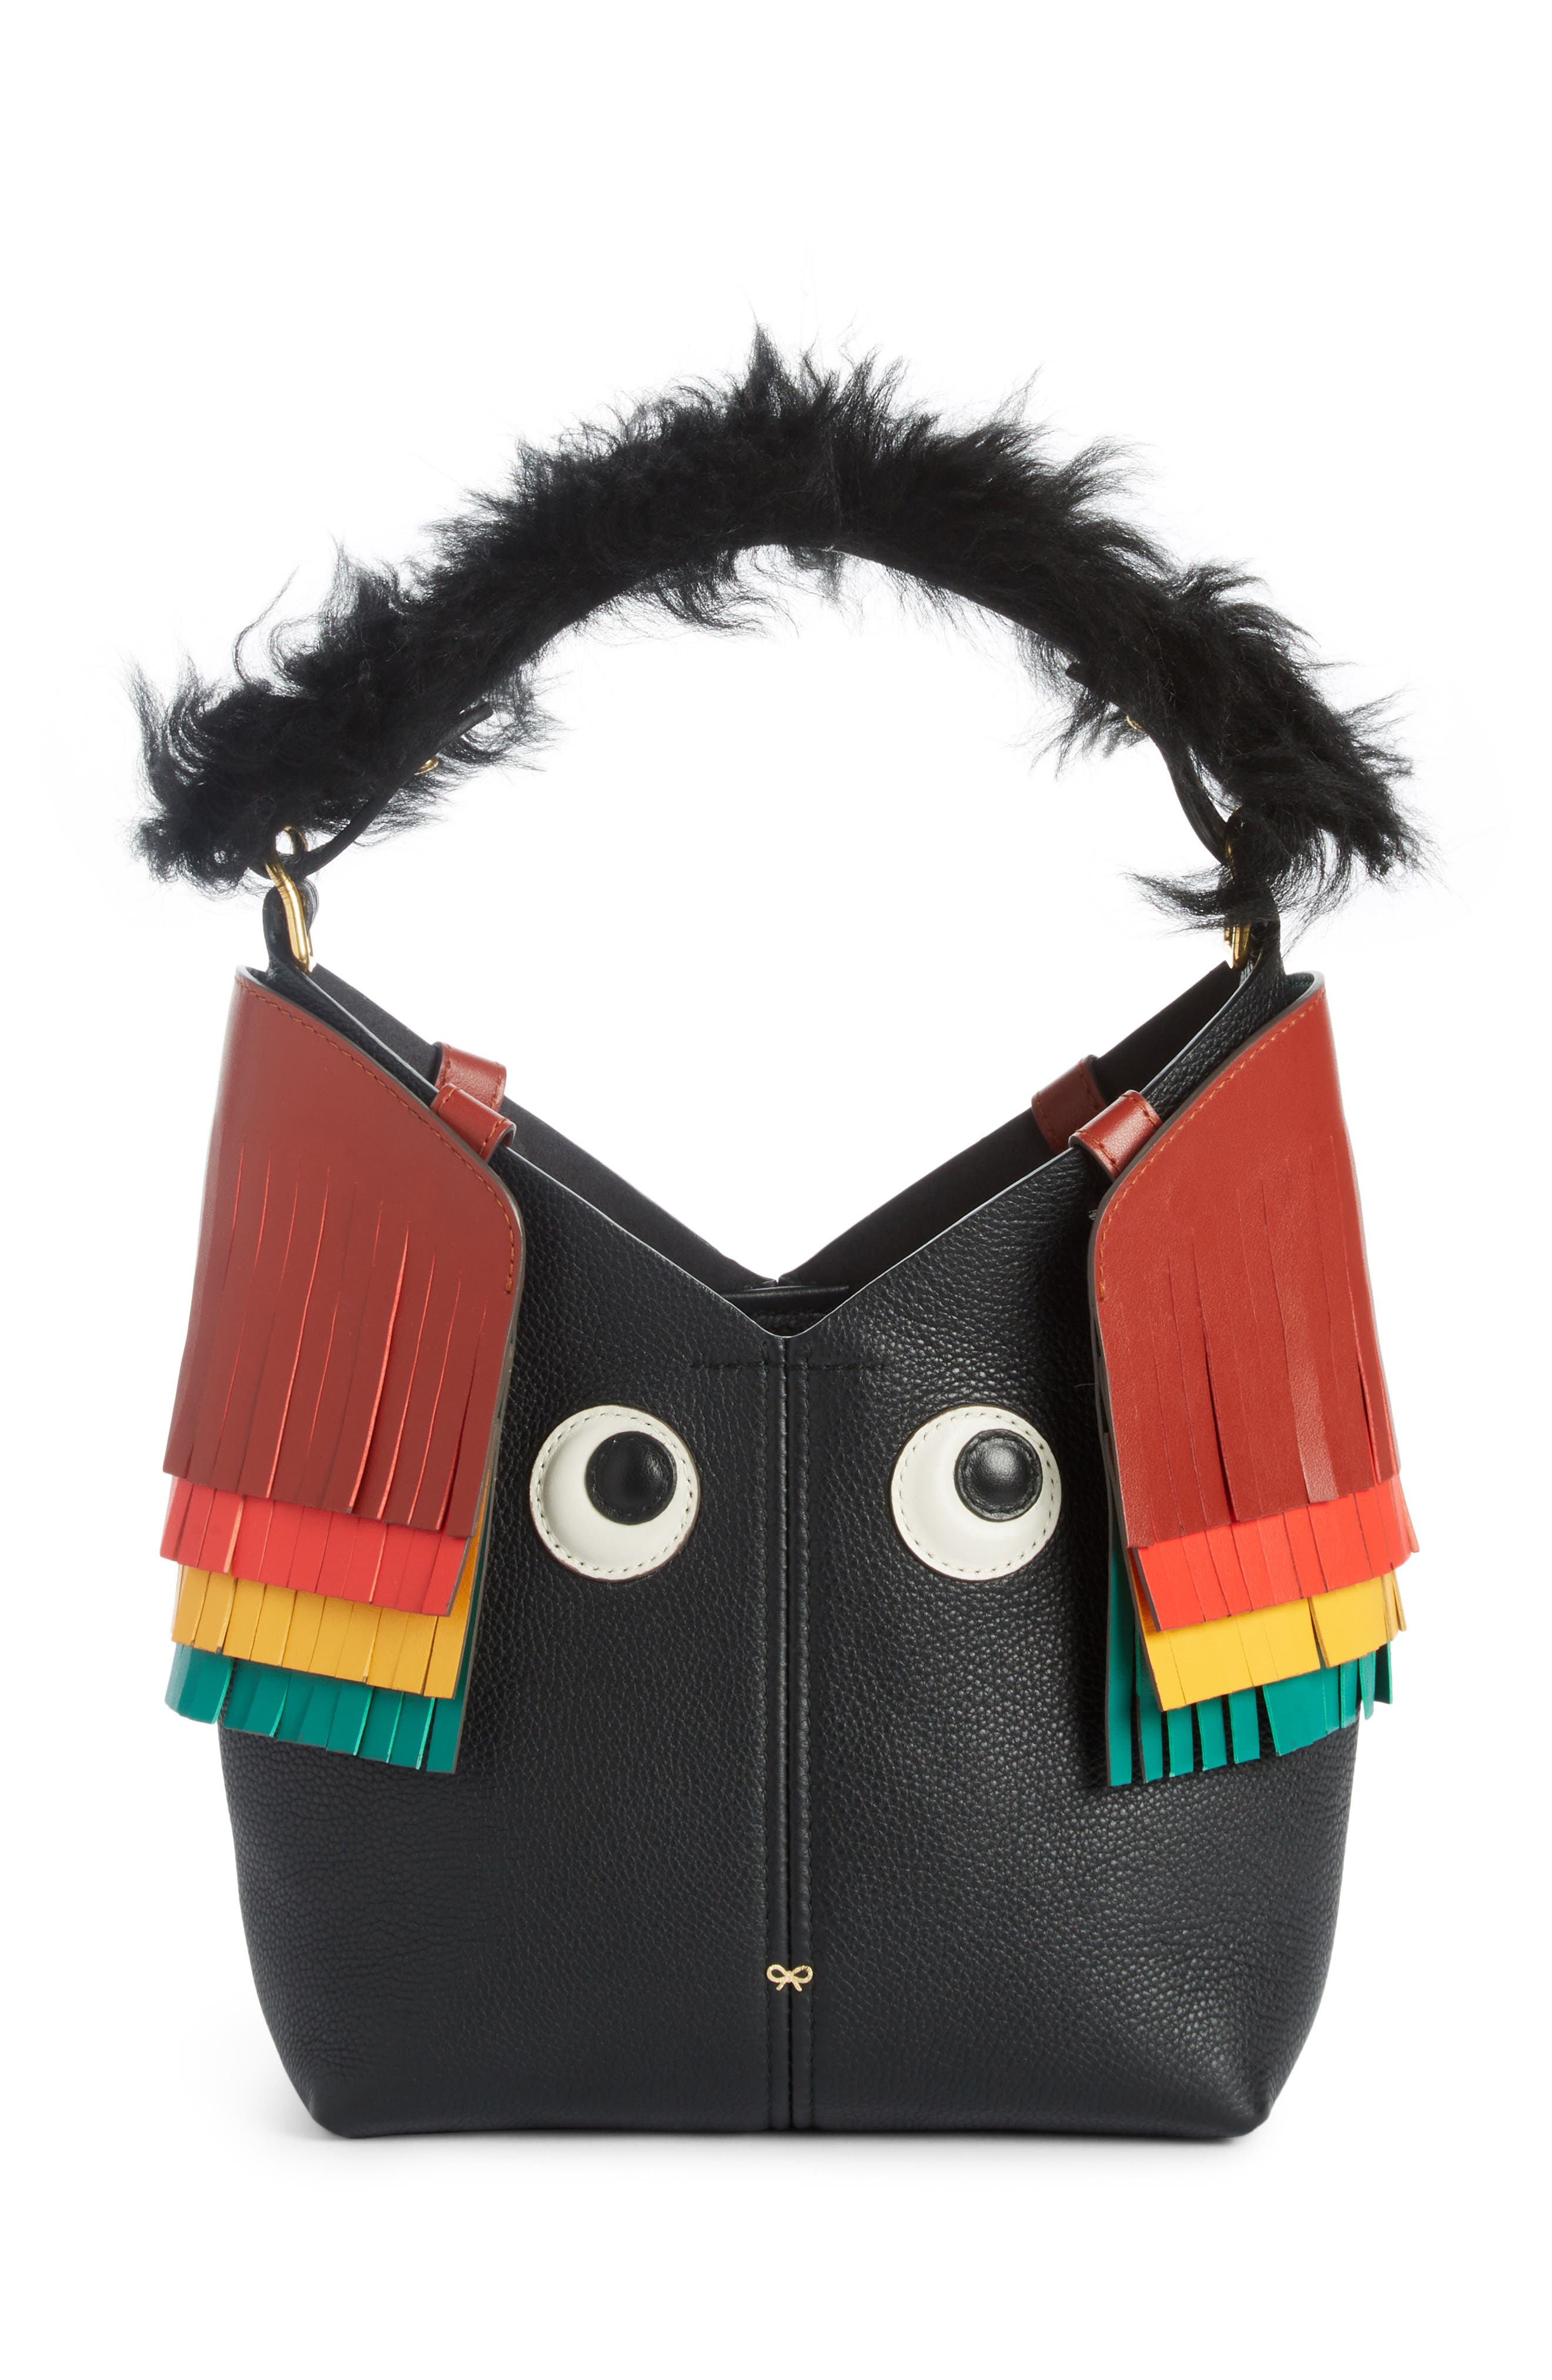 Build a Bag Mini Creature Leather Shoulder Bag with Genuine Shearling,                             Main thumbnail 1, color,                             001